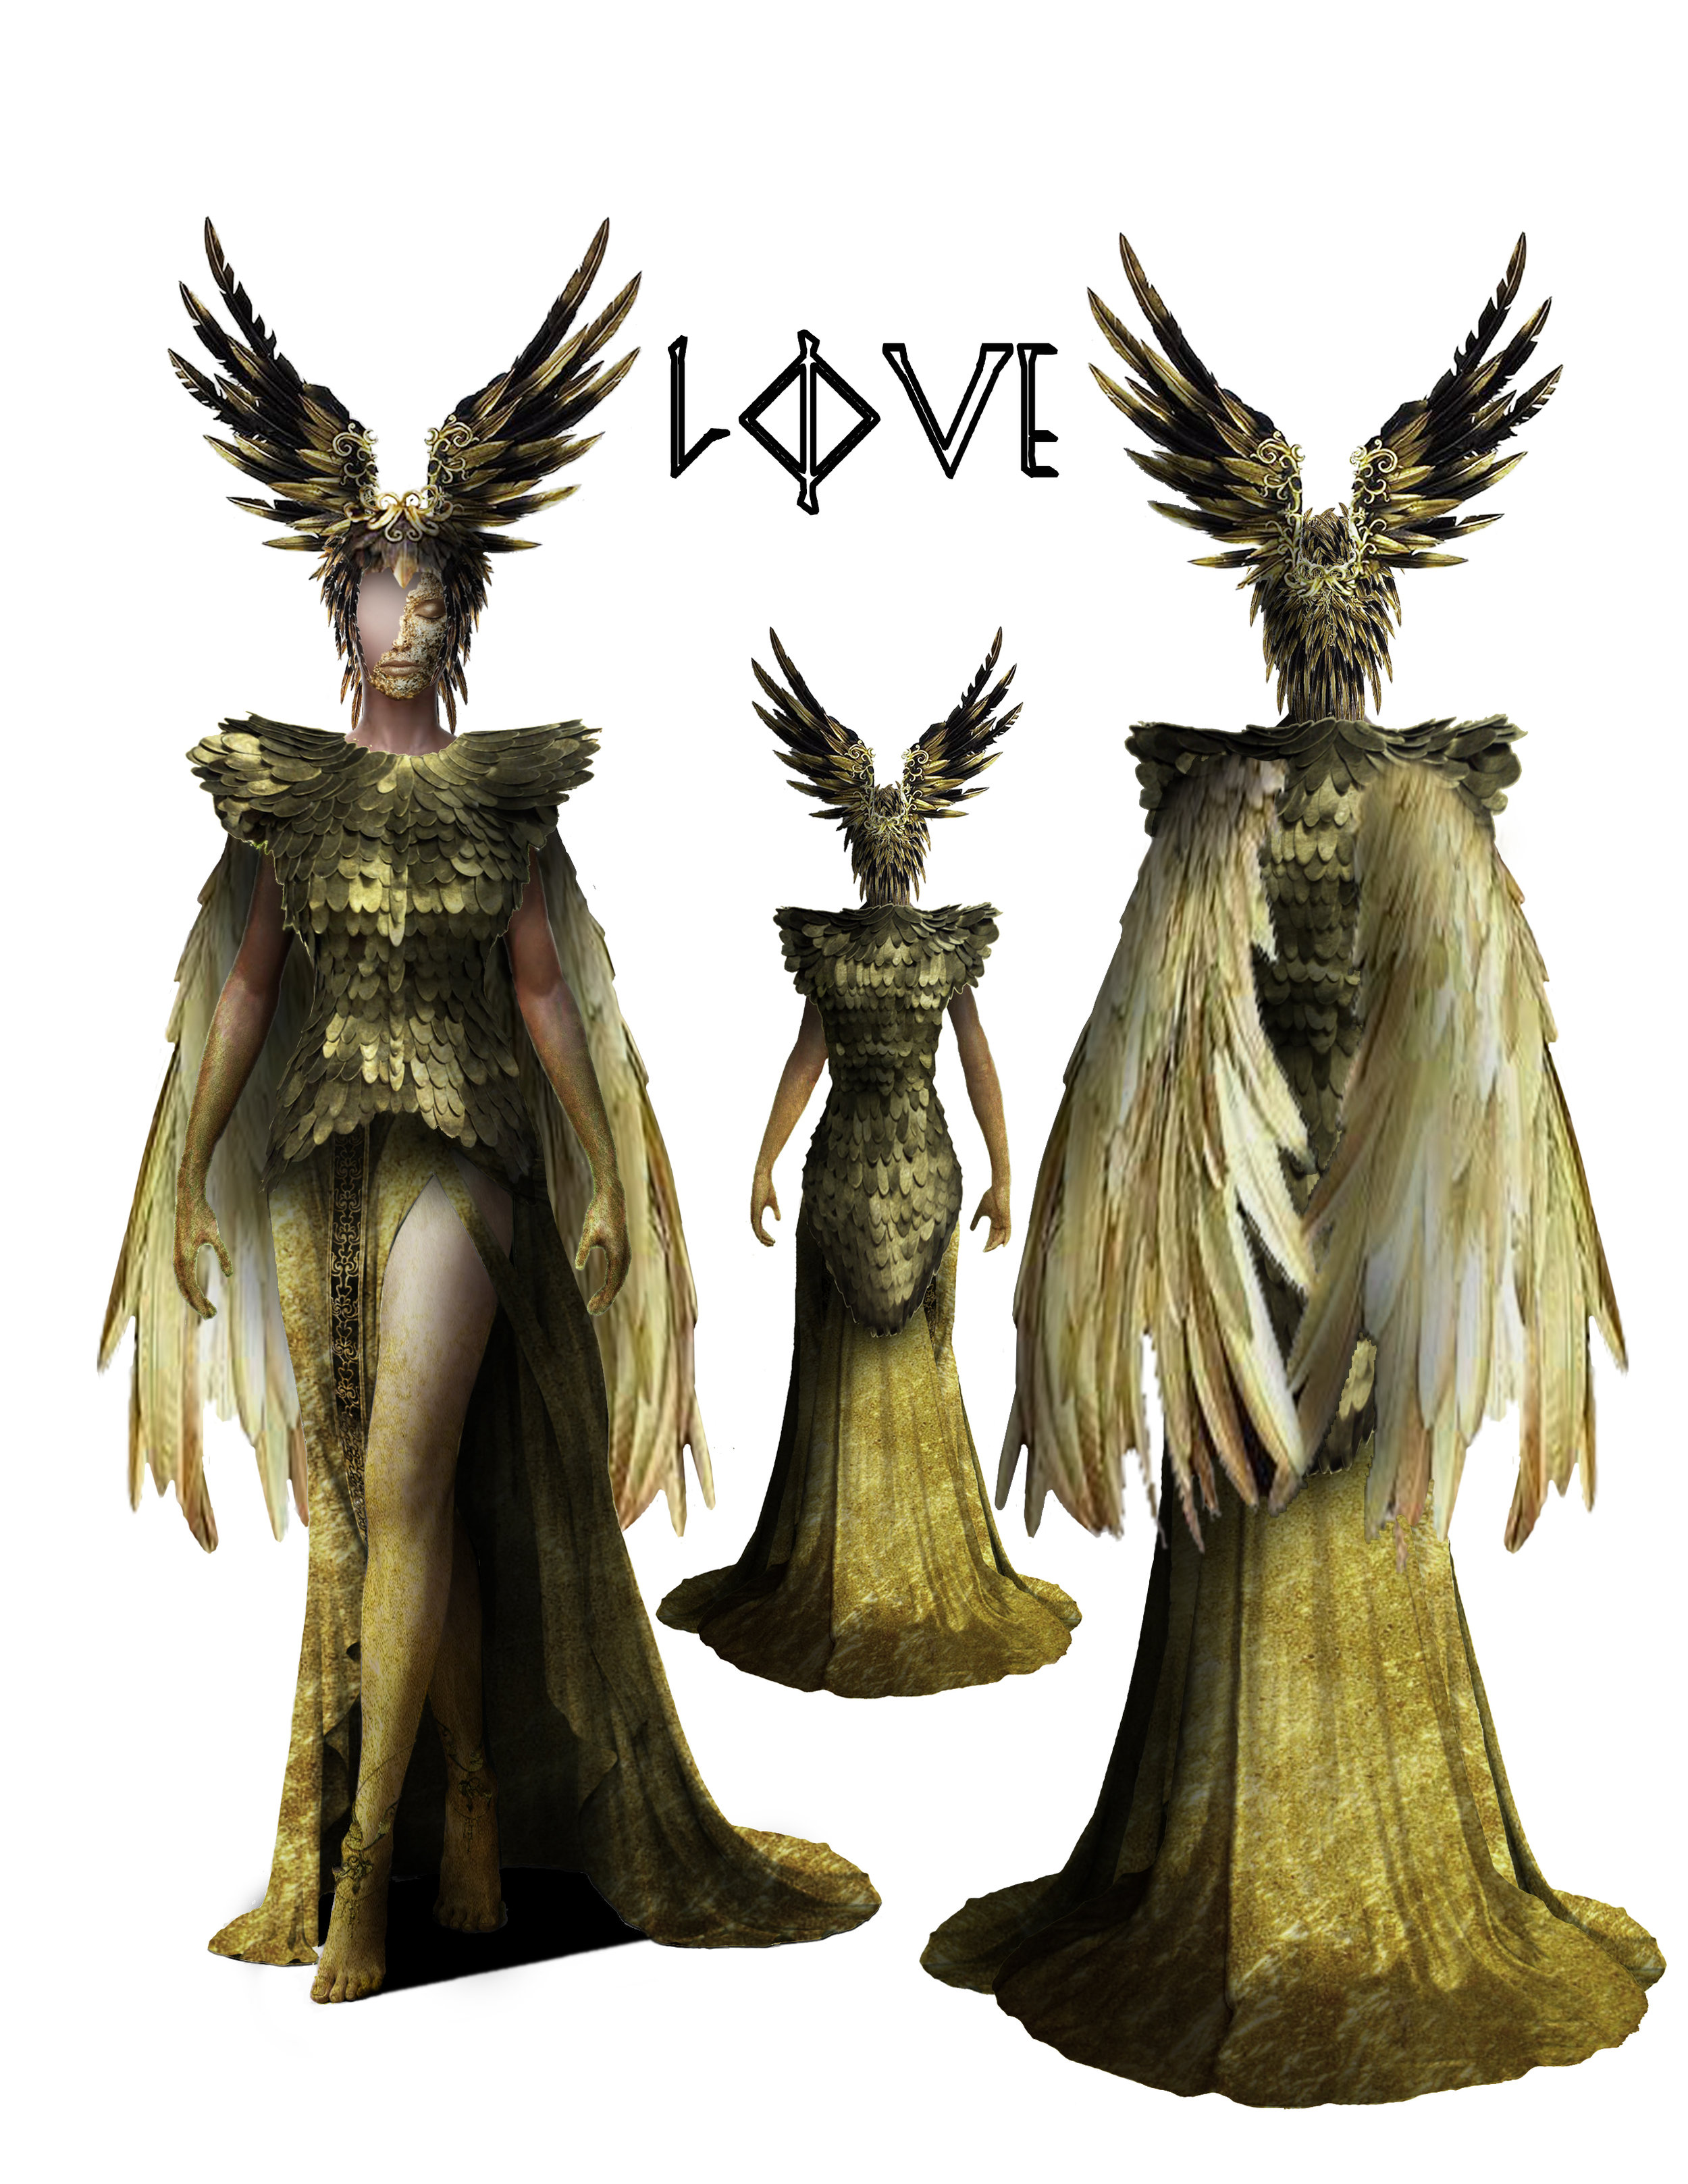 LOVE/FREYJA - Costume Design